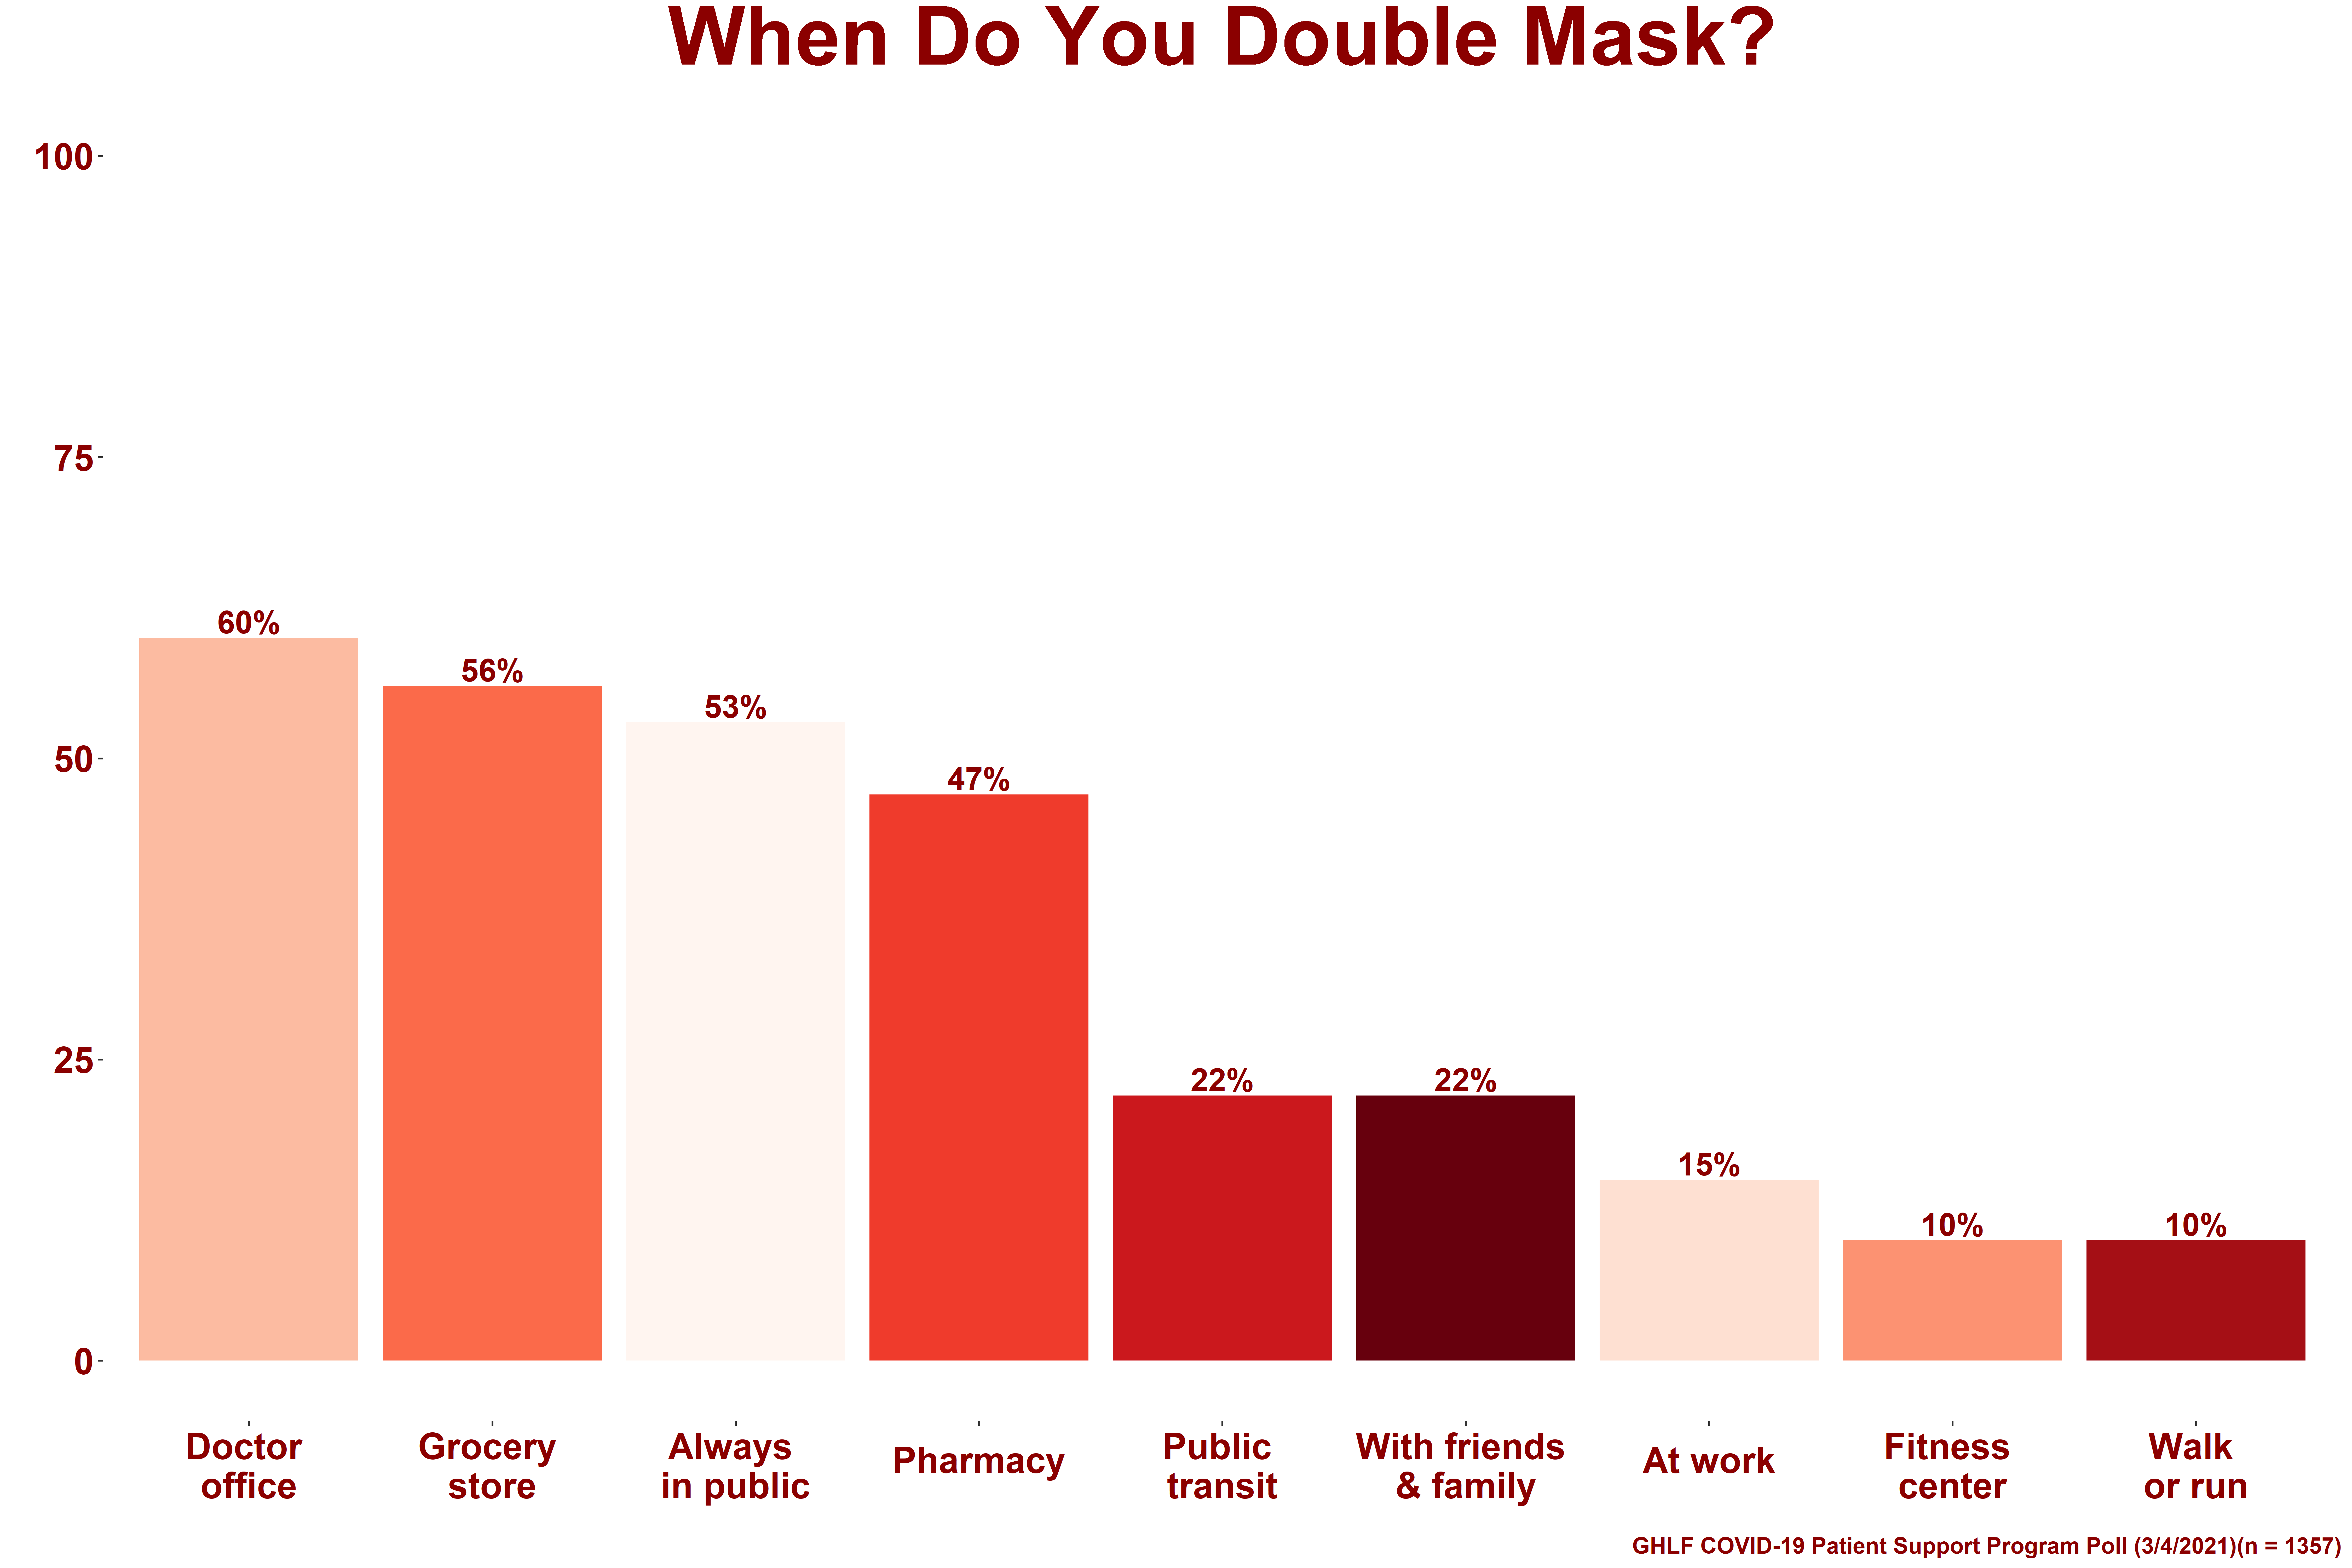 0321_PSP-Poll_When-do-you-double-mask